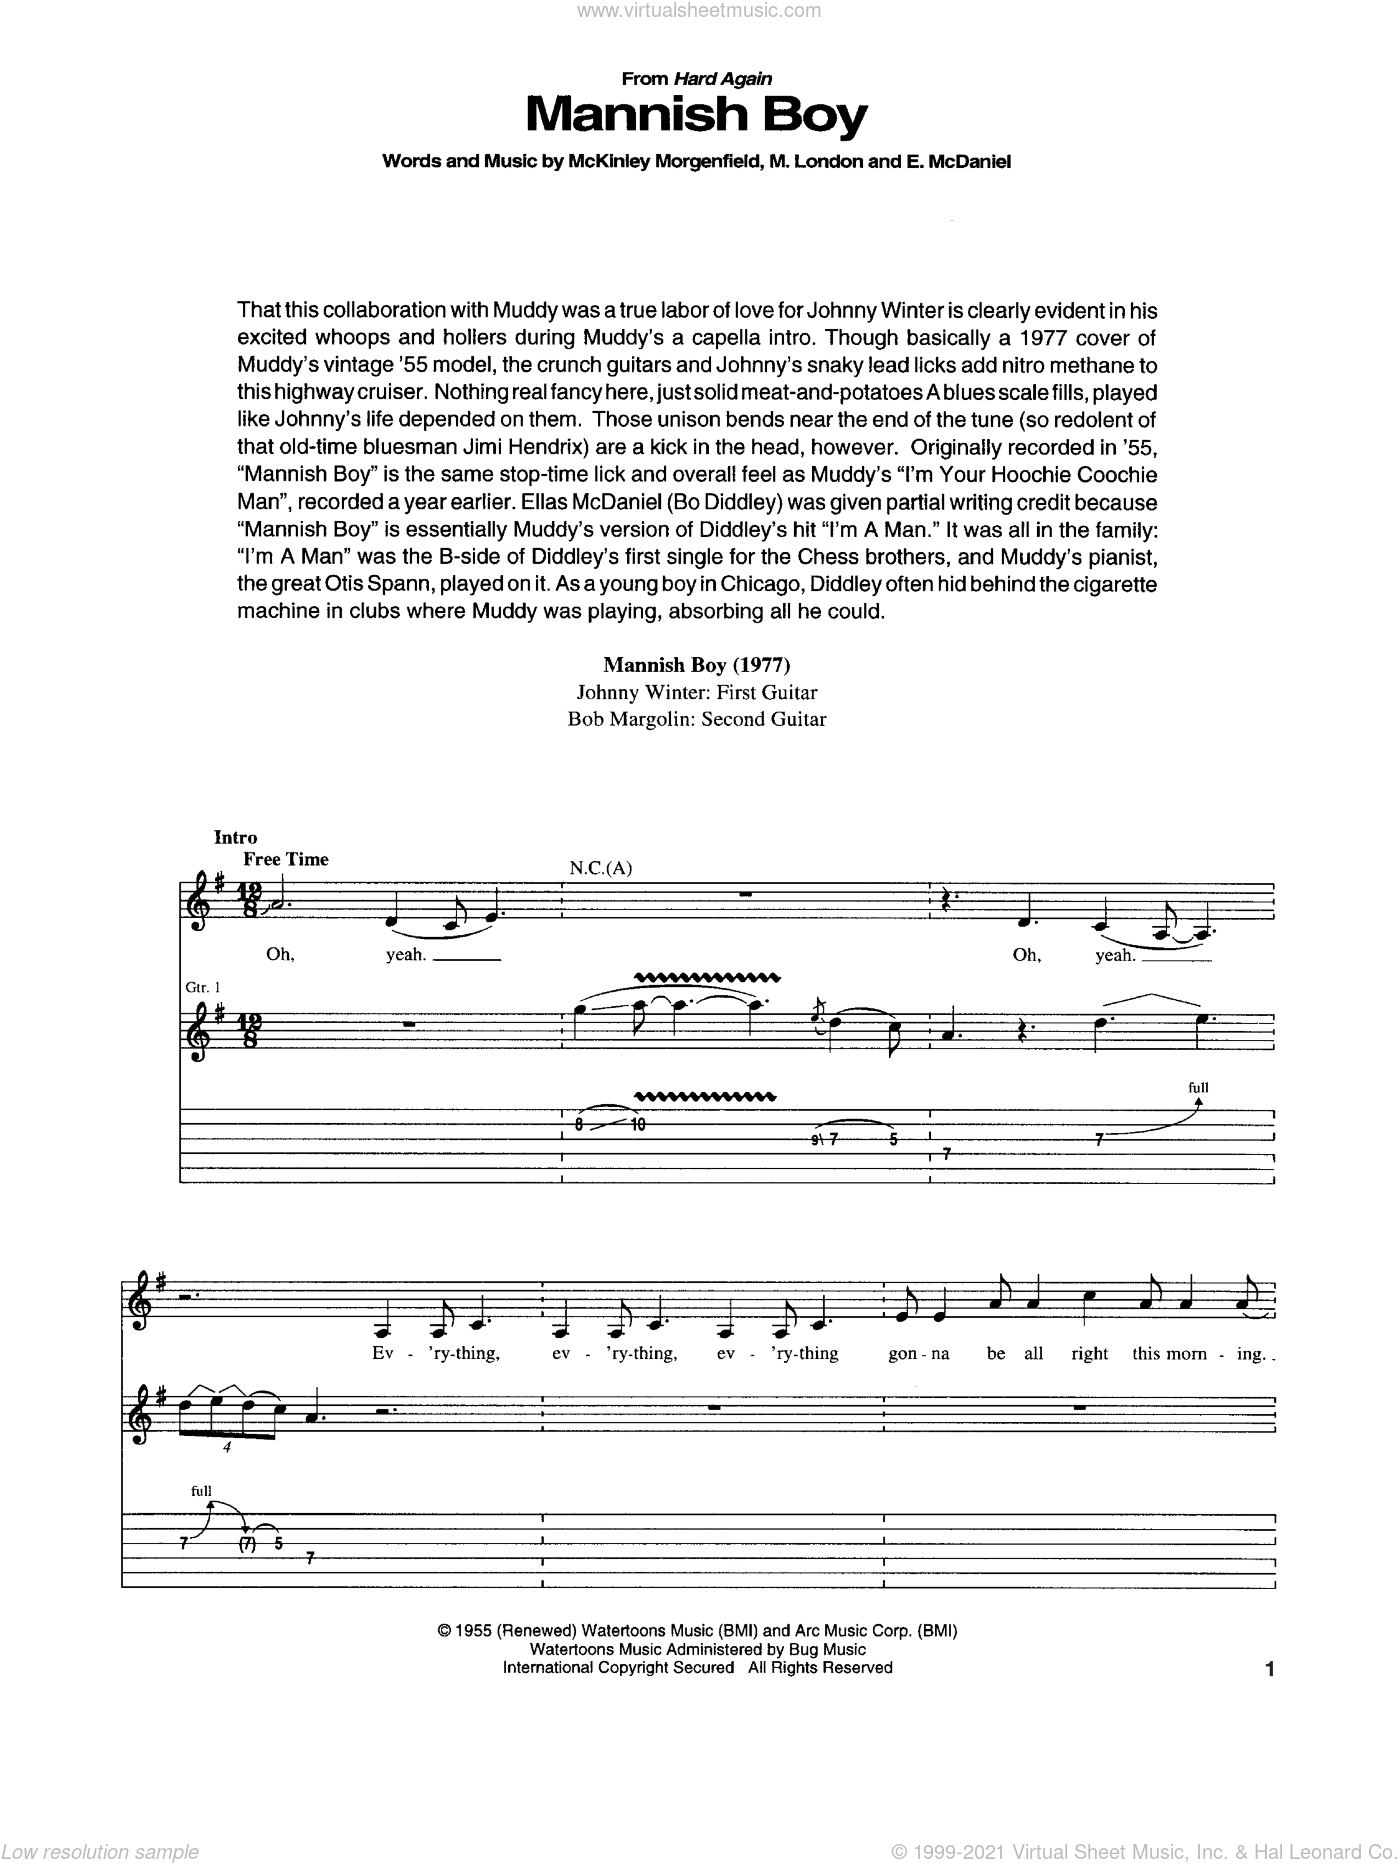 Mannish Boy sheet music for guitar (tablature) by Muddy Waters and Jimi Hendrix, intermediate. Score Image Preview.